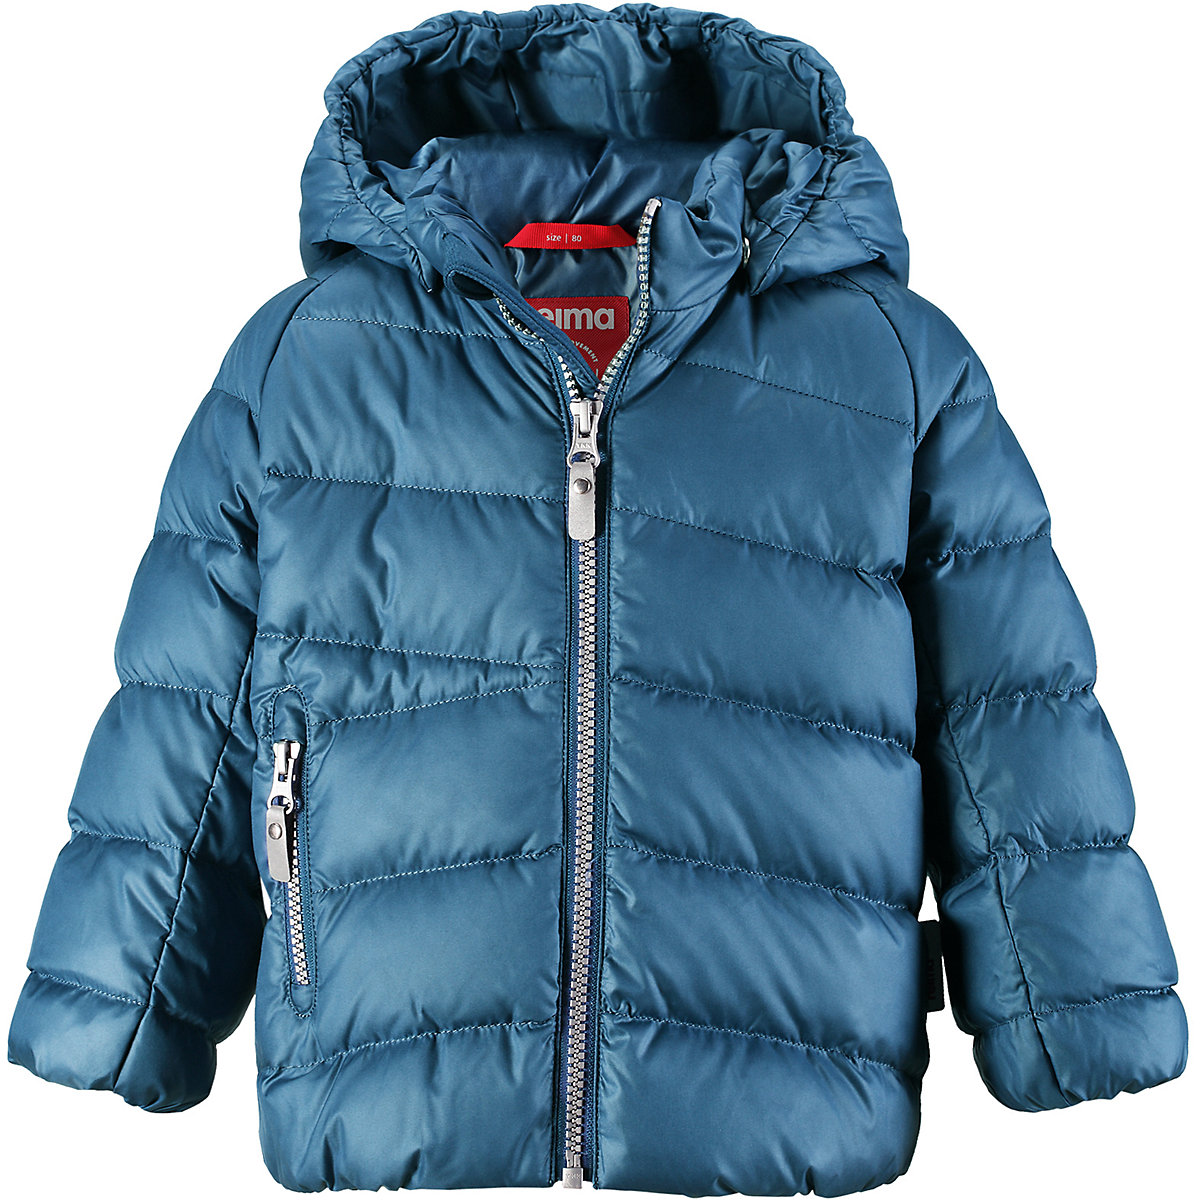 REIMA Jackets & Coats 8689397 for boys and girls baby clothing winter warm boy girl jacket Polyester icebear 2018 fashion winter jacket men s brand clothing jacket high quality thick warm men winter coat down jacket 17md811